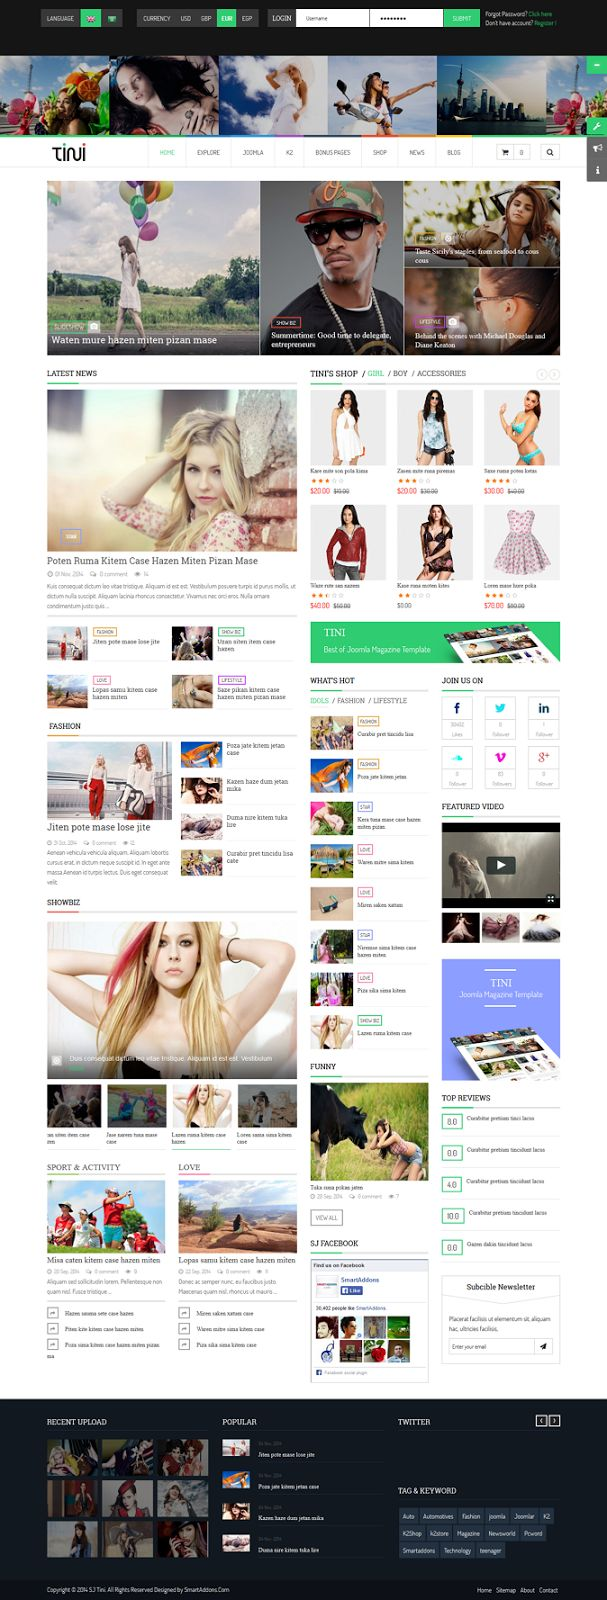 600 best website images on pinterest website designs web layout tini news magazine template with online shop joomla theme design website solutioingenieria Images